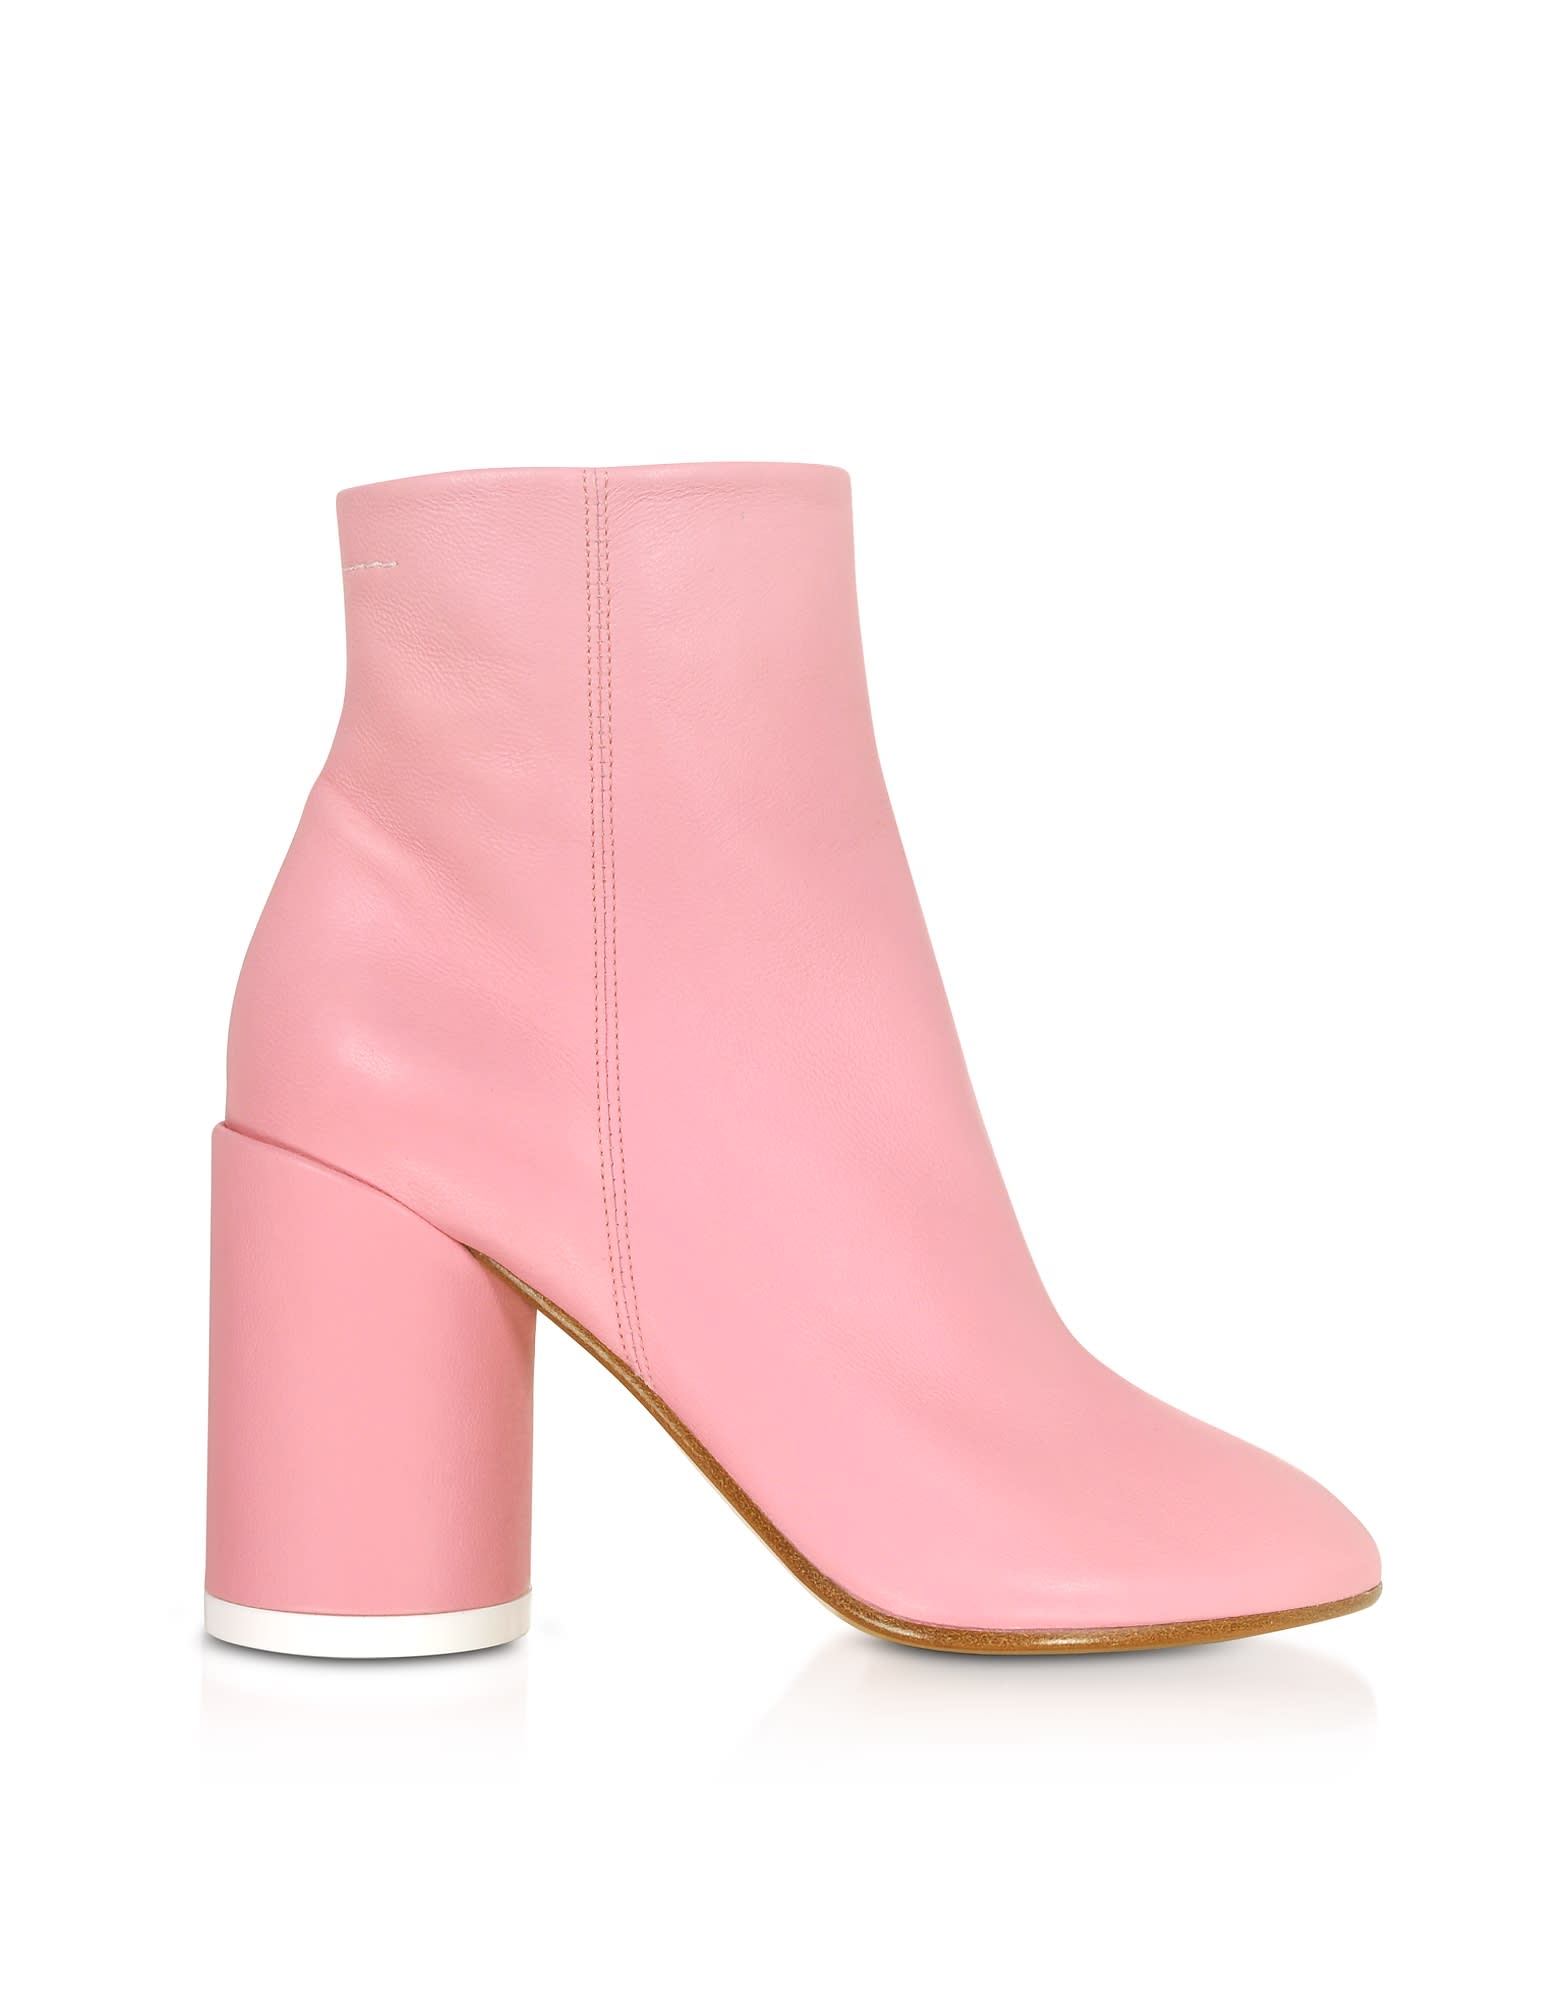 Mm6 Maison Martin Margiela Peony Pink Soft Nappa Leather Boots